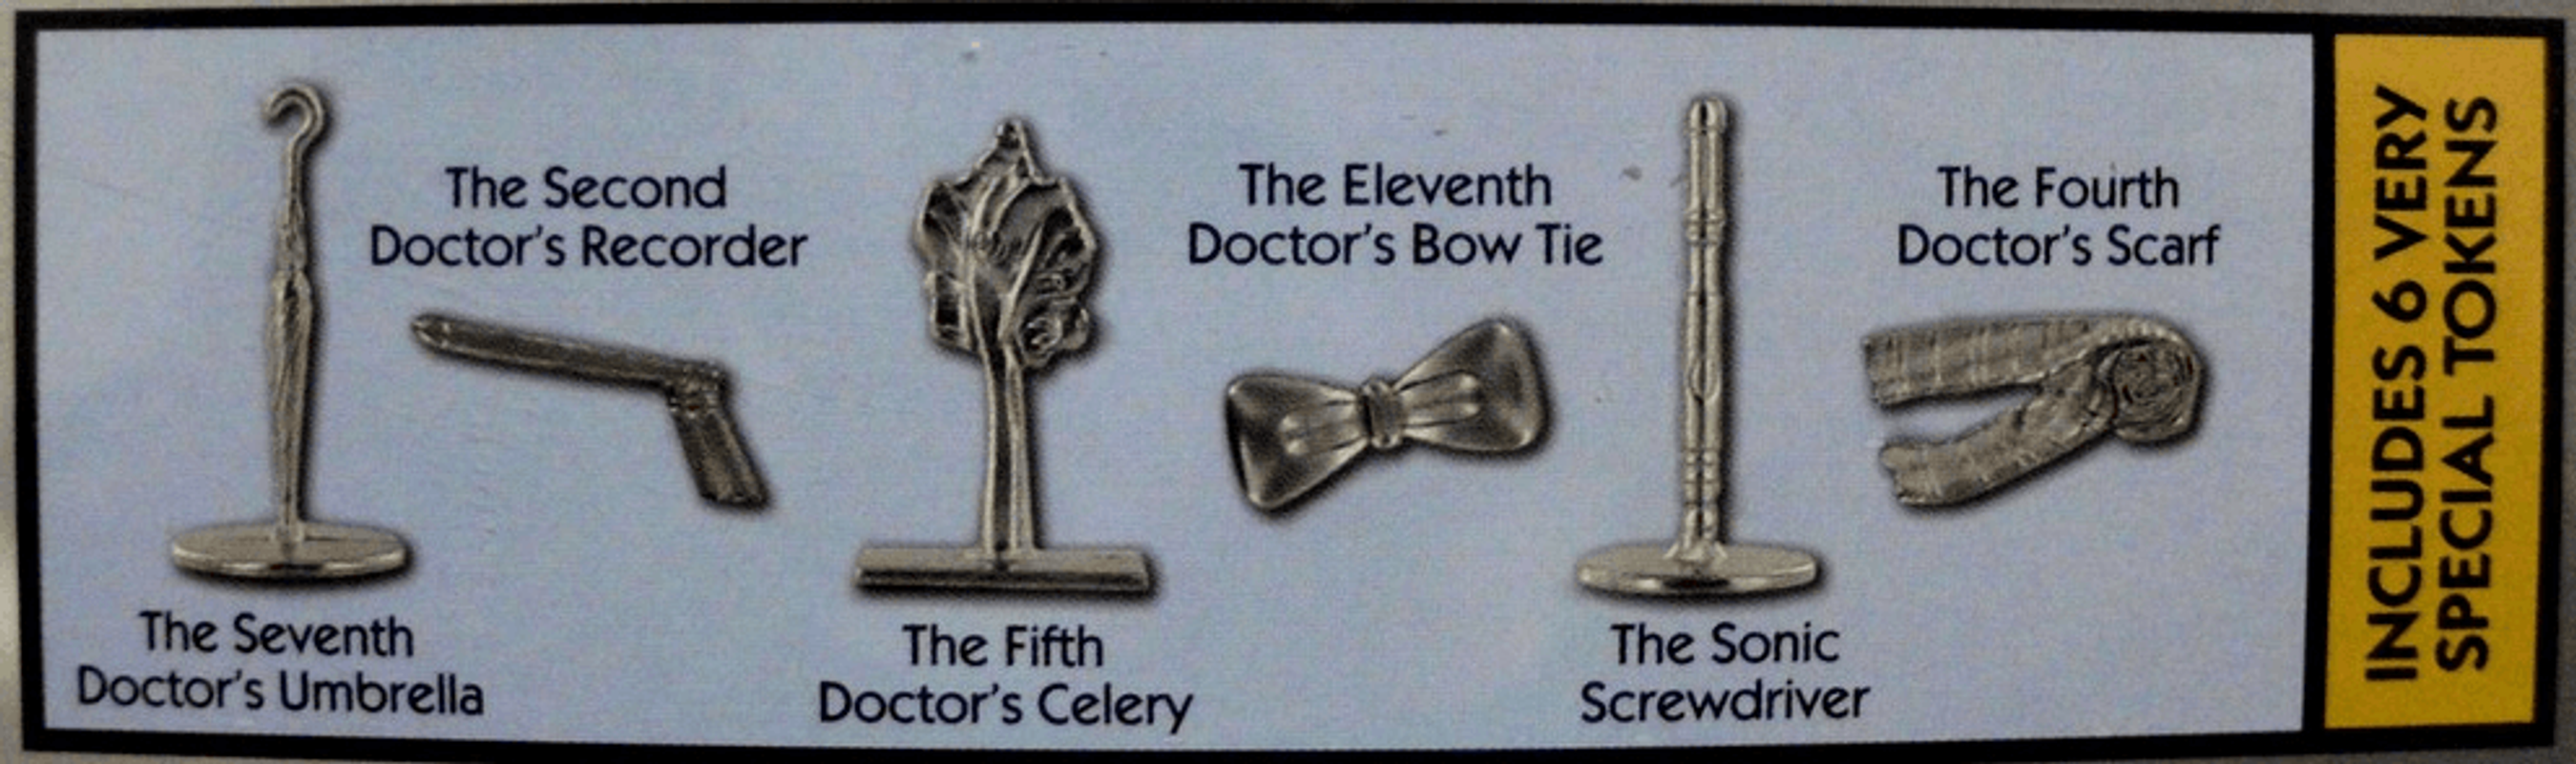 Doctor Who Monopoly 50th Anniversary Collectors Edition components